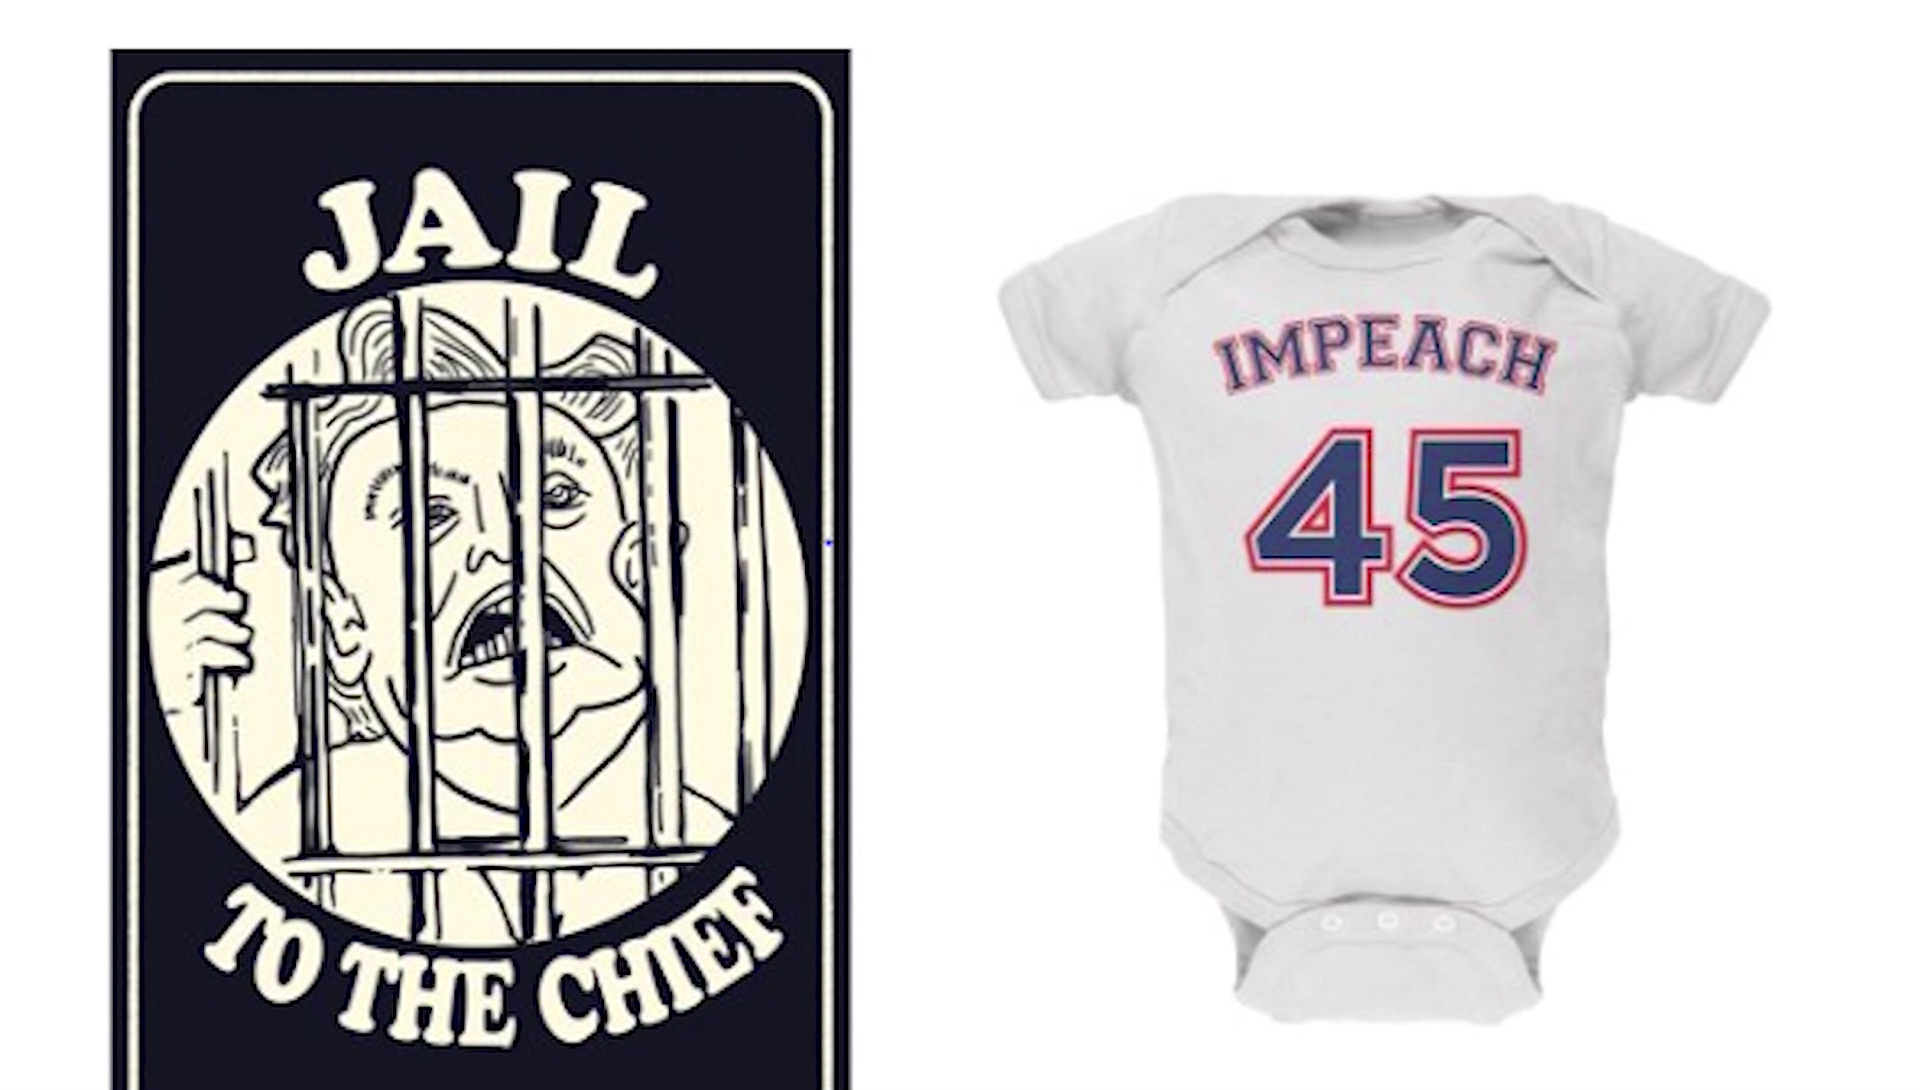 658d07e3 Some Trump supporters call for Walmart boycott over 'Impeach 45' products